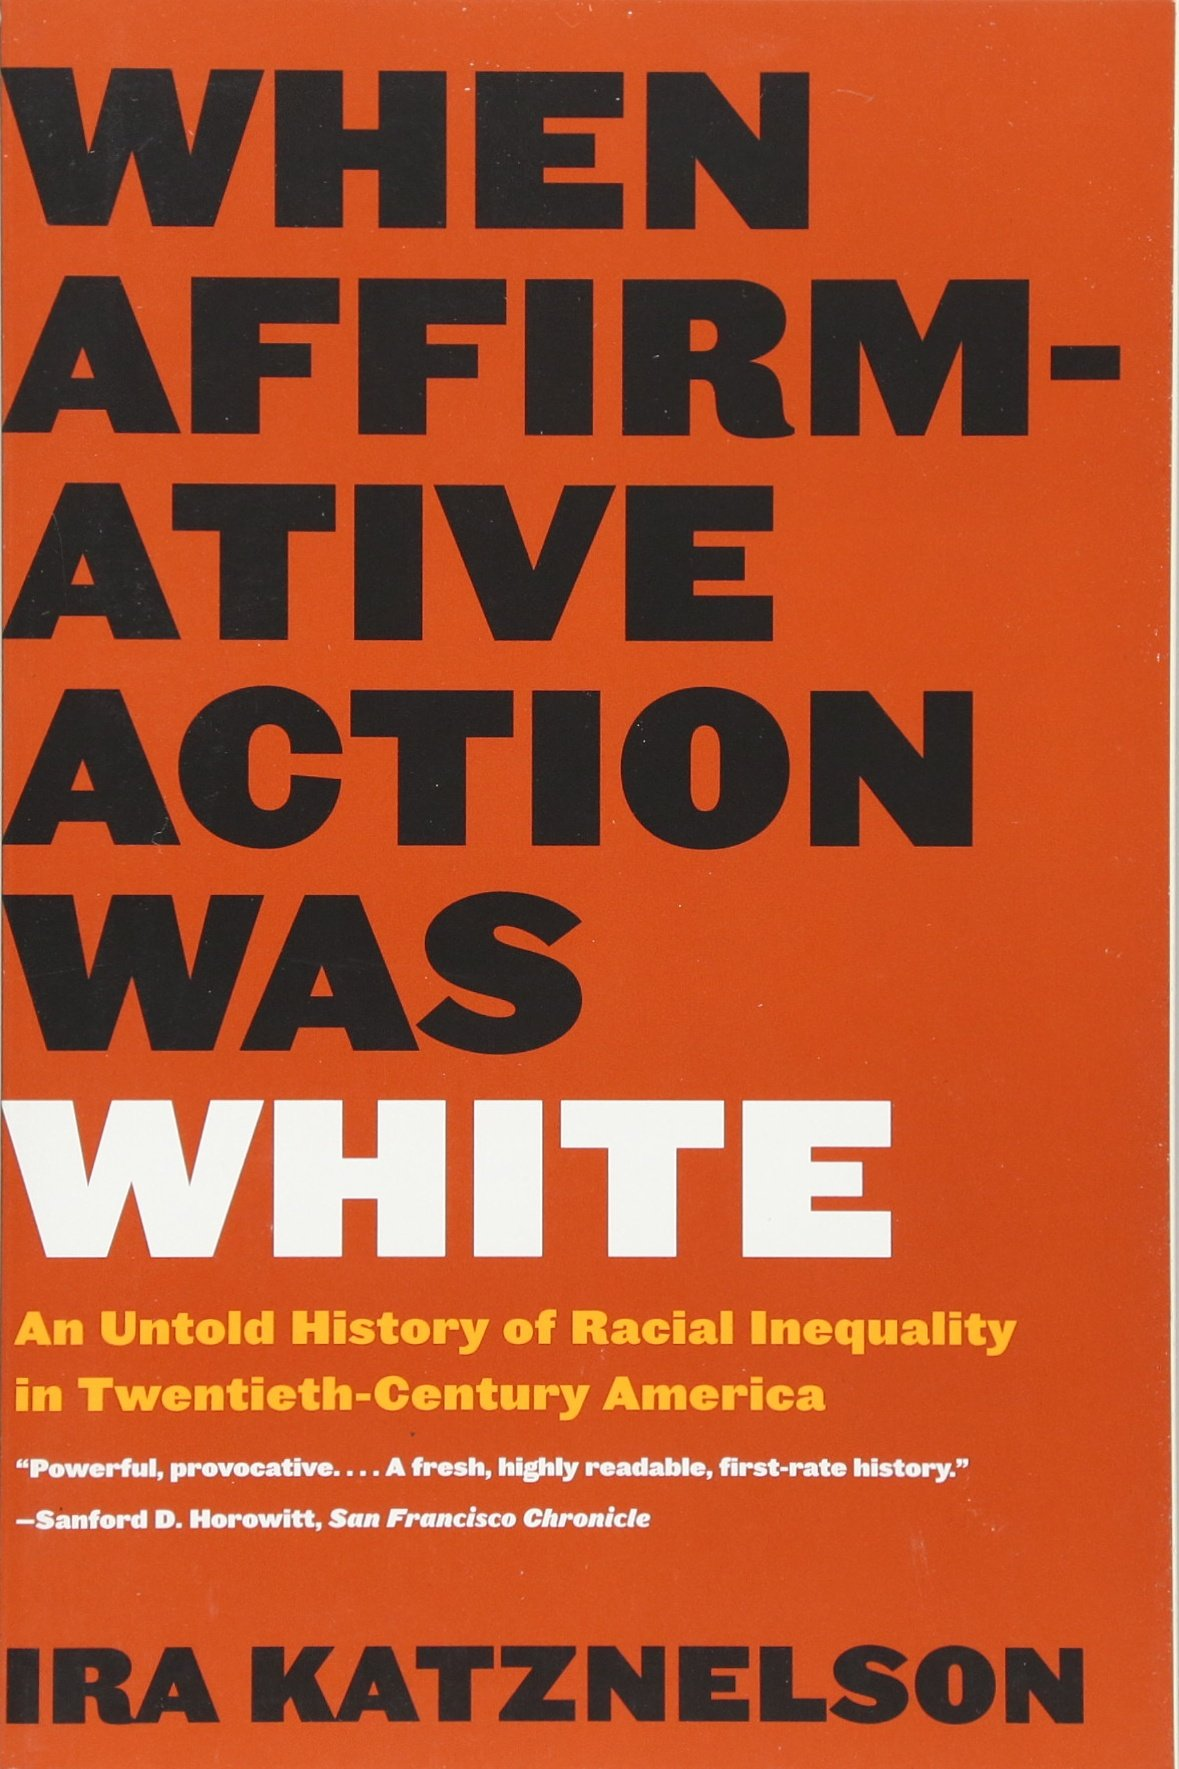 When Affirmative Action Katznelson cover art